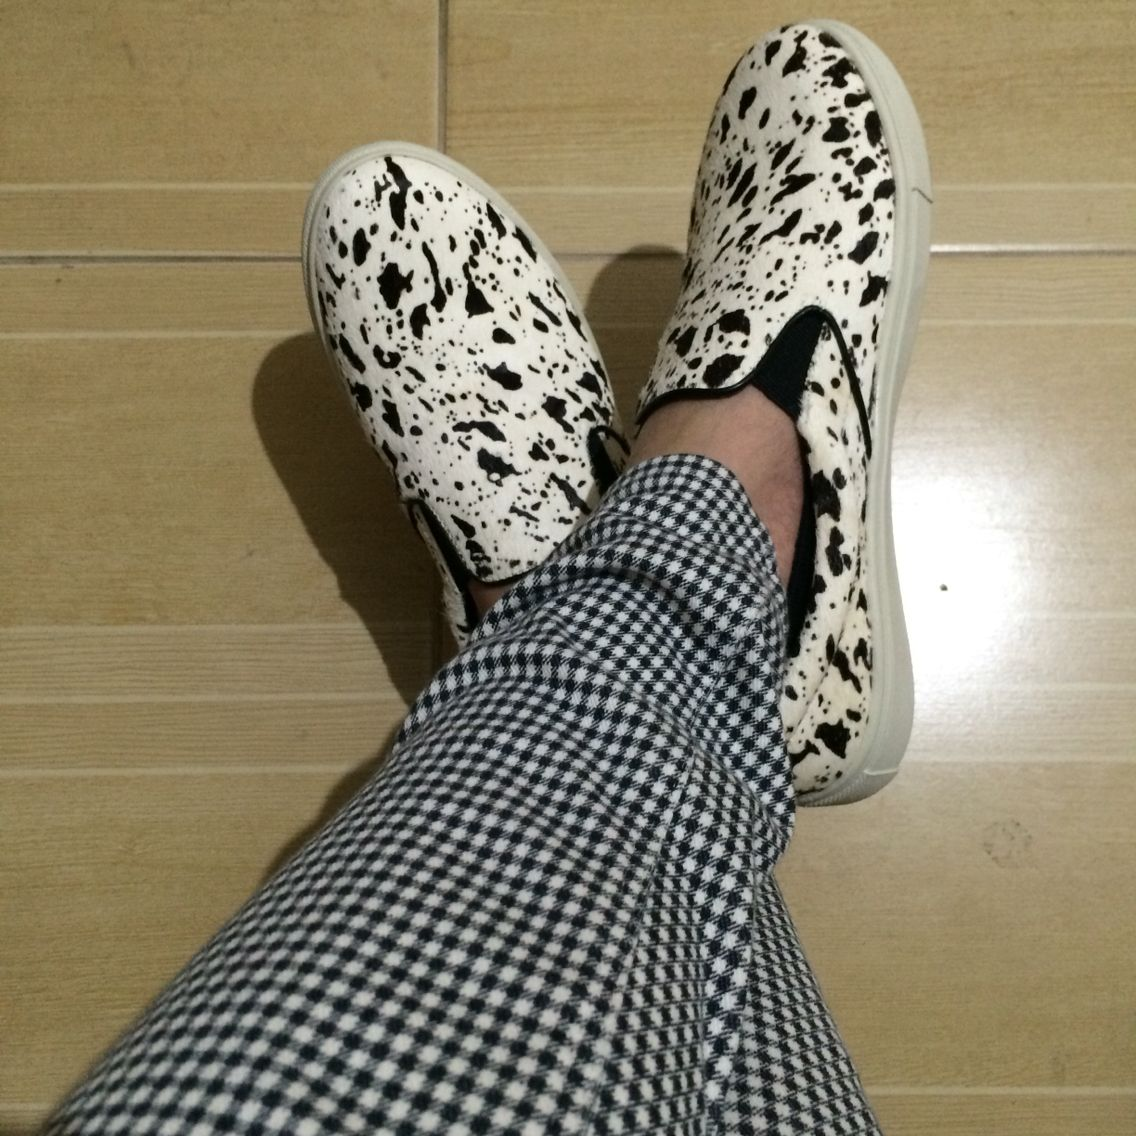 Steve Madden Ecentric and Uniqlo checkered jeggings both in Black and White.